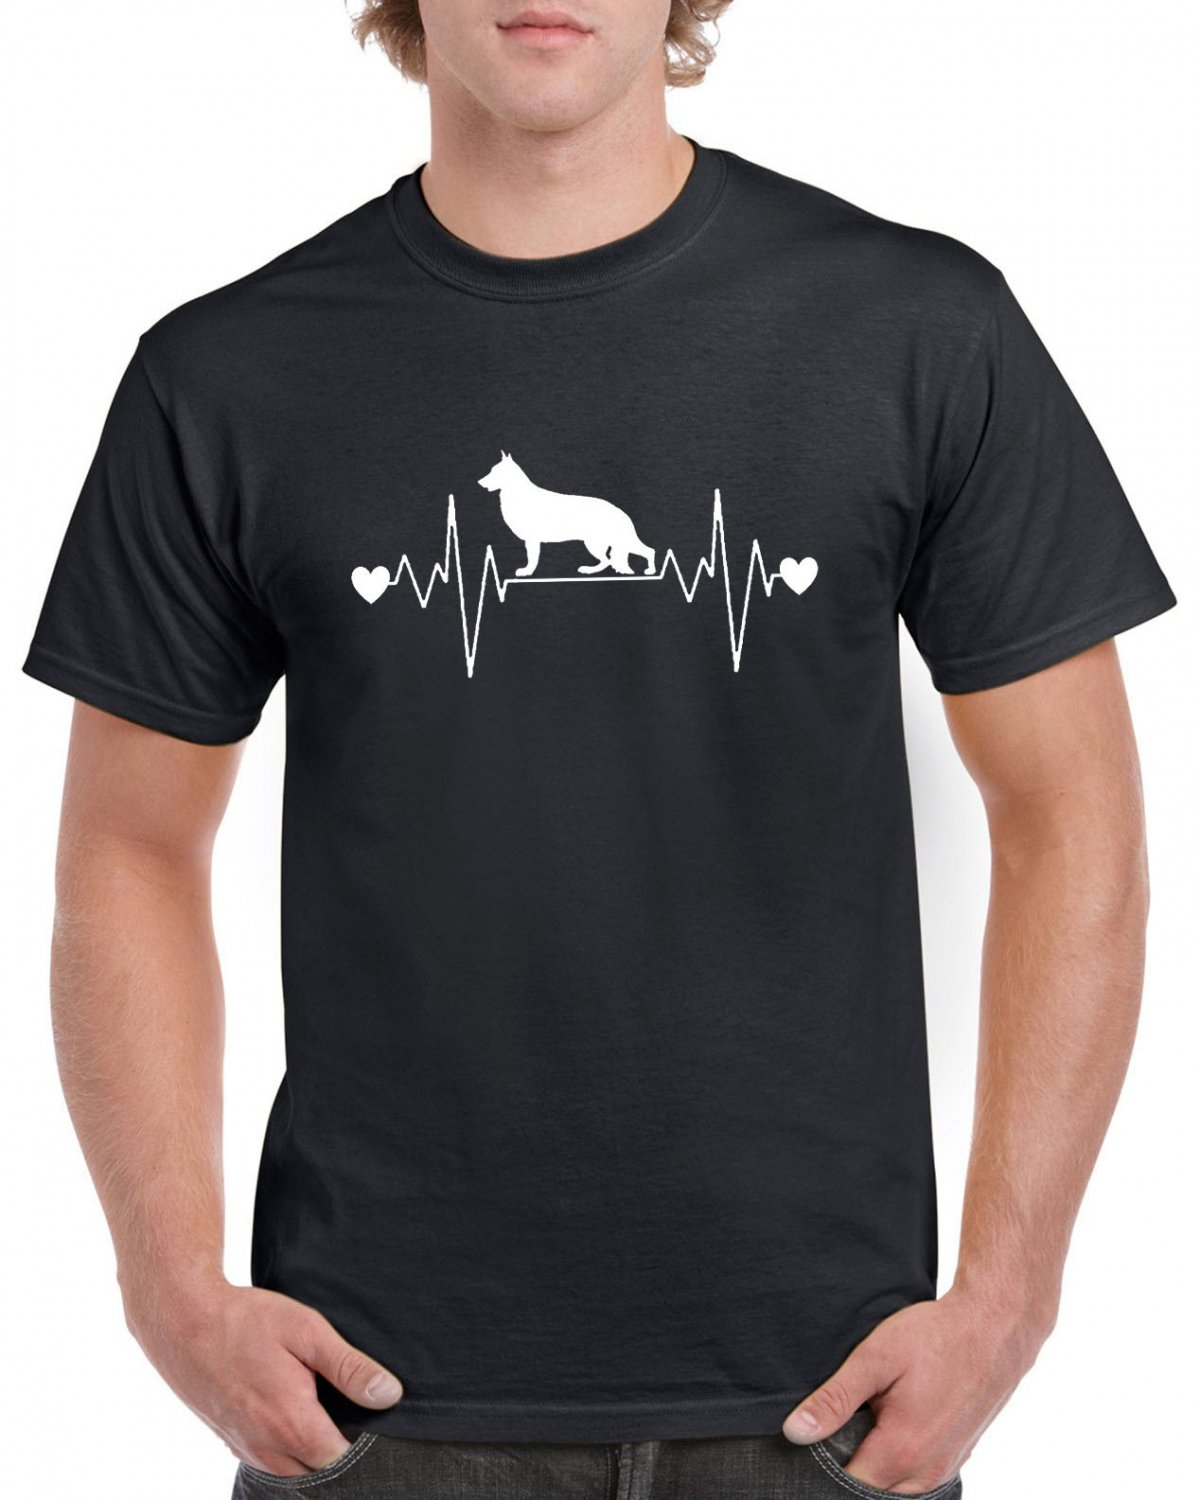 German Shepherd Heart Pulse Rate T-shirt Dog Lovers Tshirt Cool Unisex Top Tee